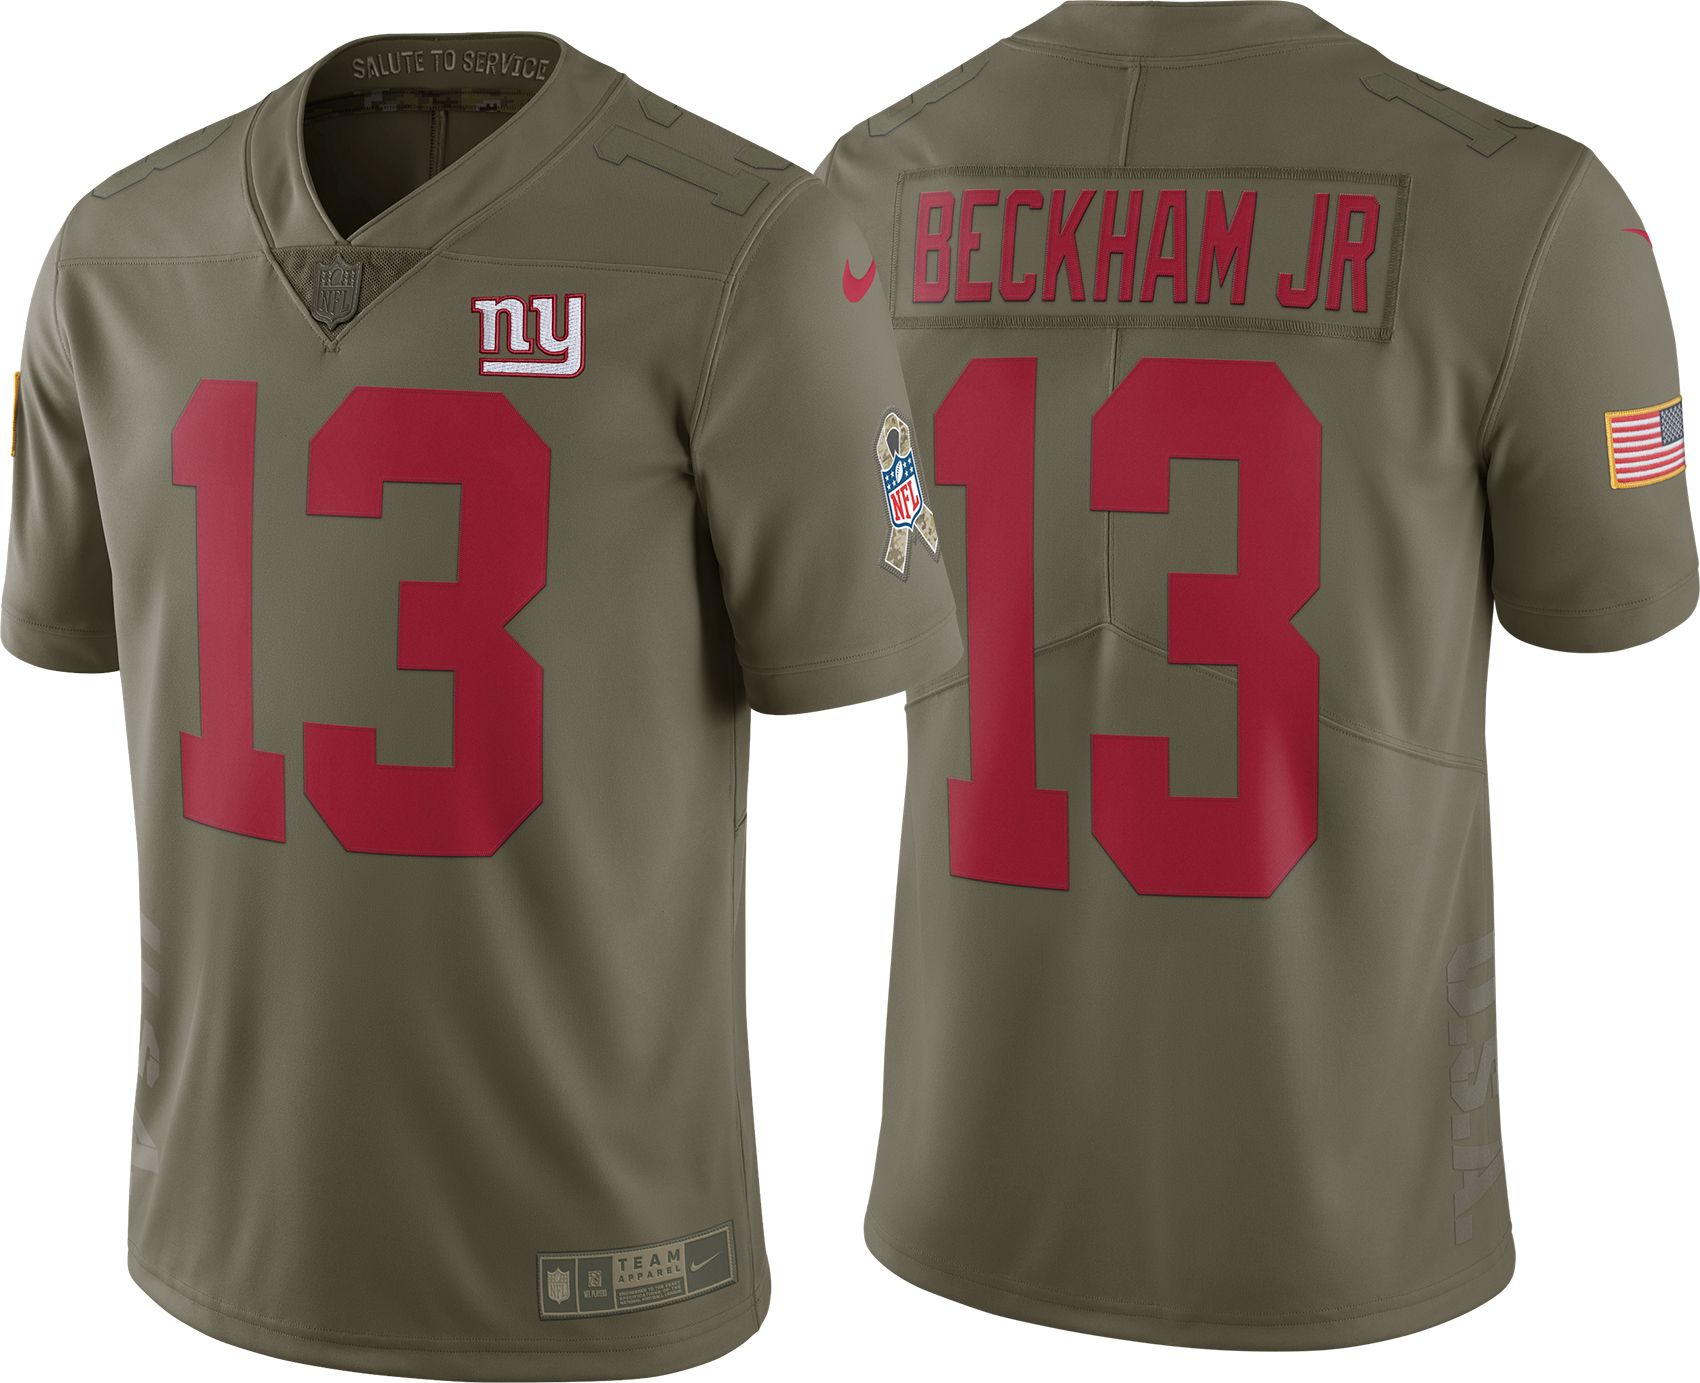 sale retailer 50dfb b5a29 Would you rock the NFL salute to service jersey? | Sports ...